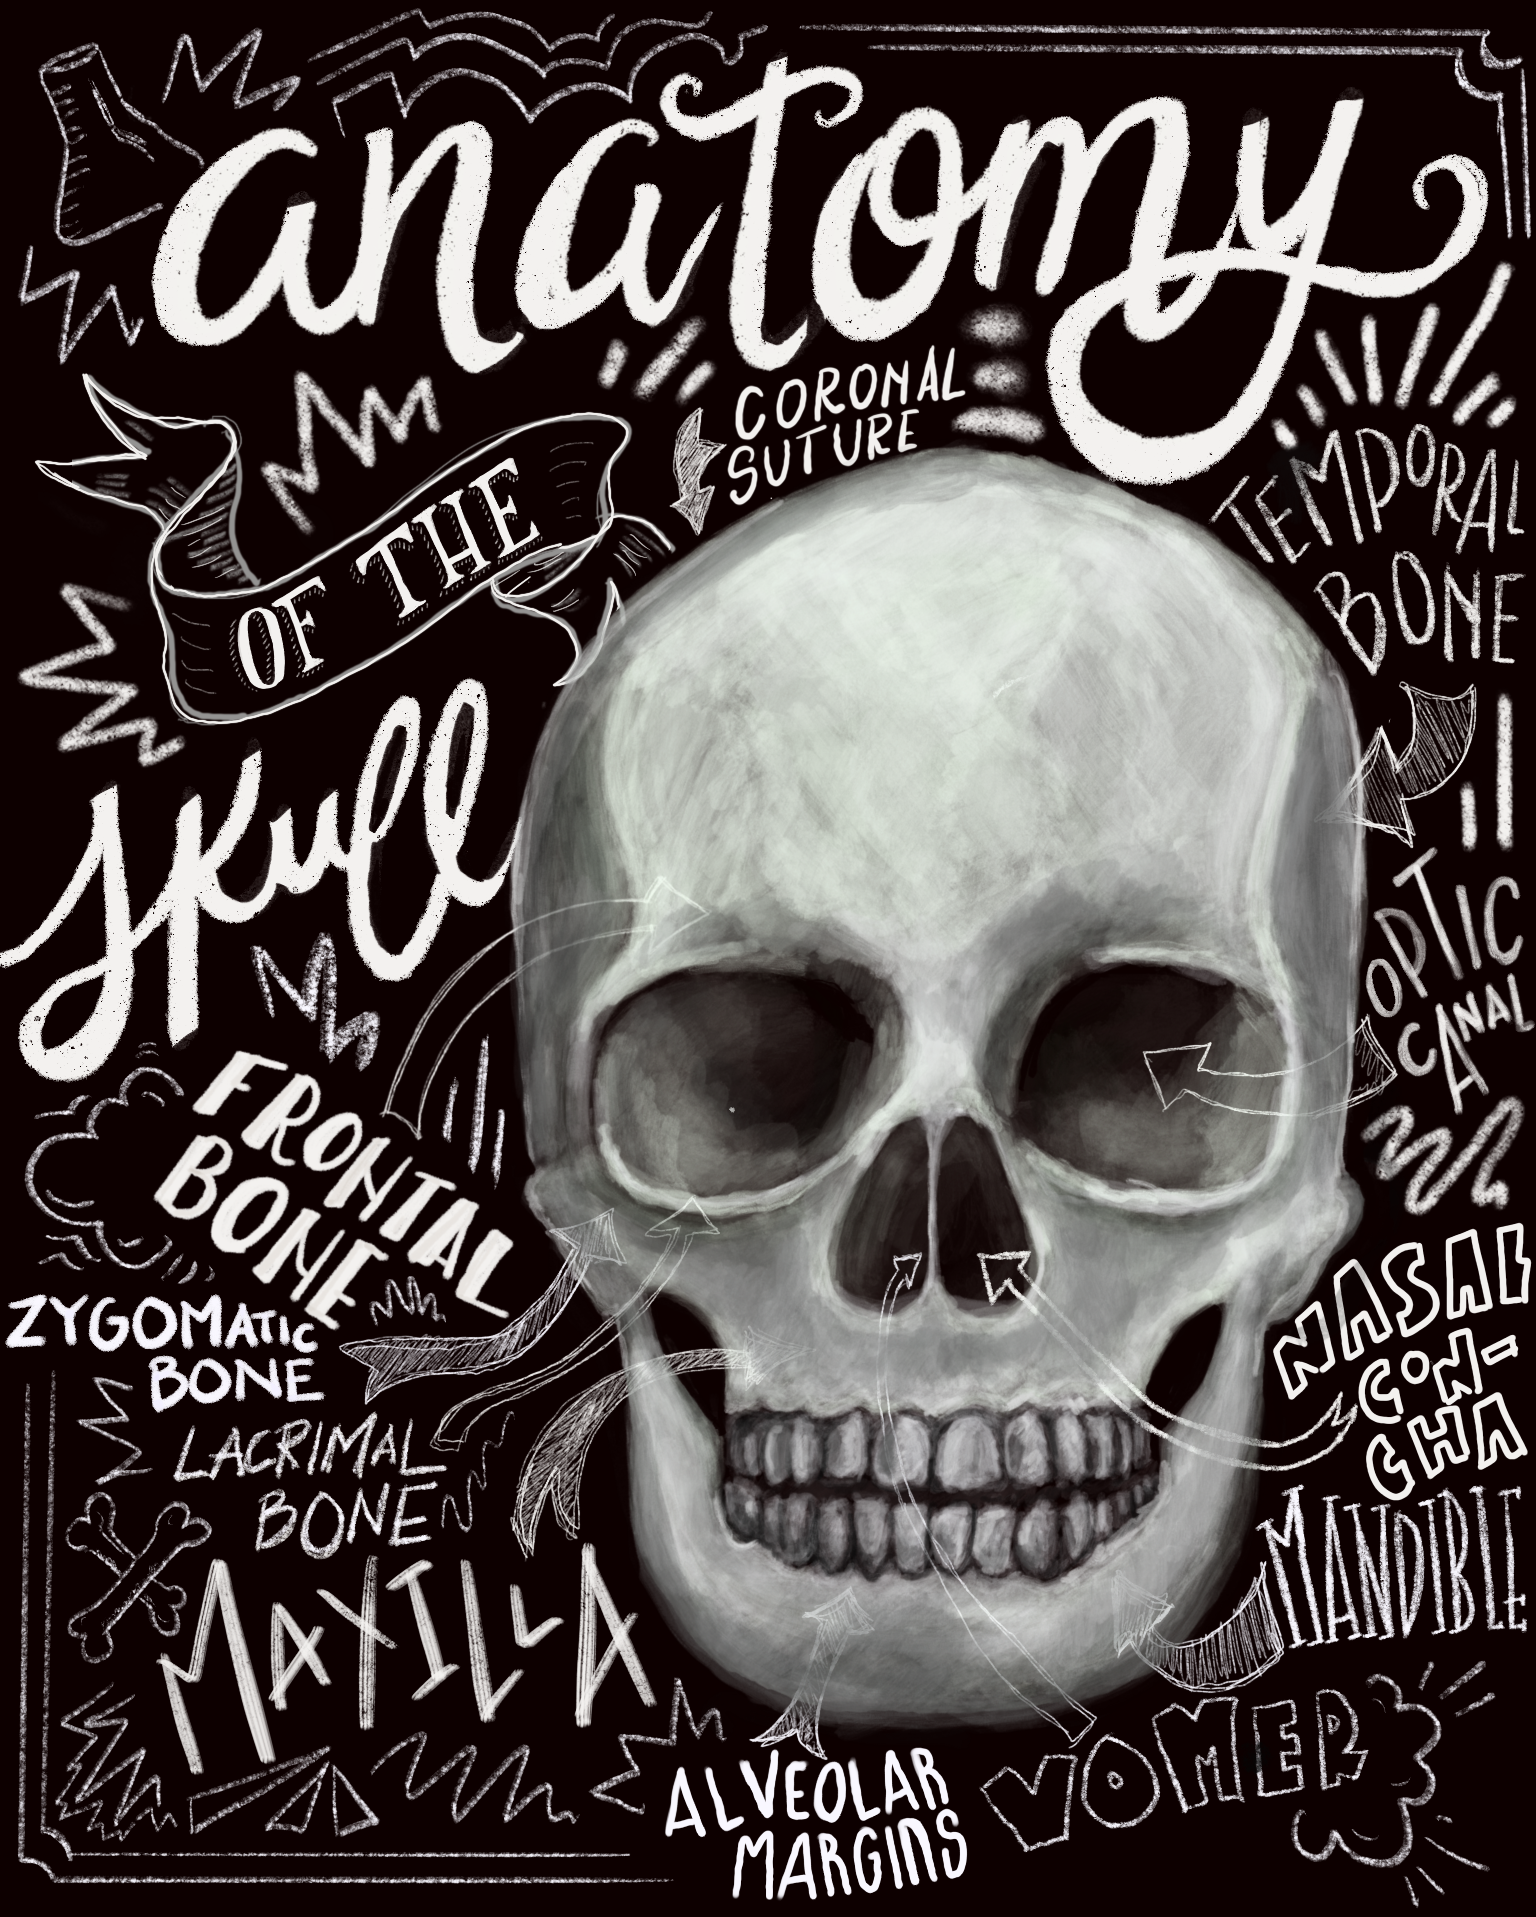 Anatomy of a Skull